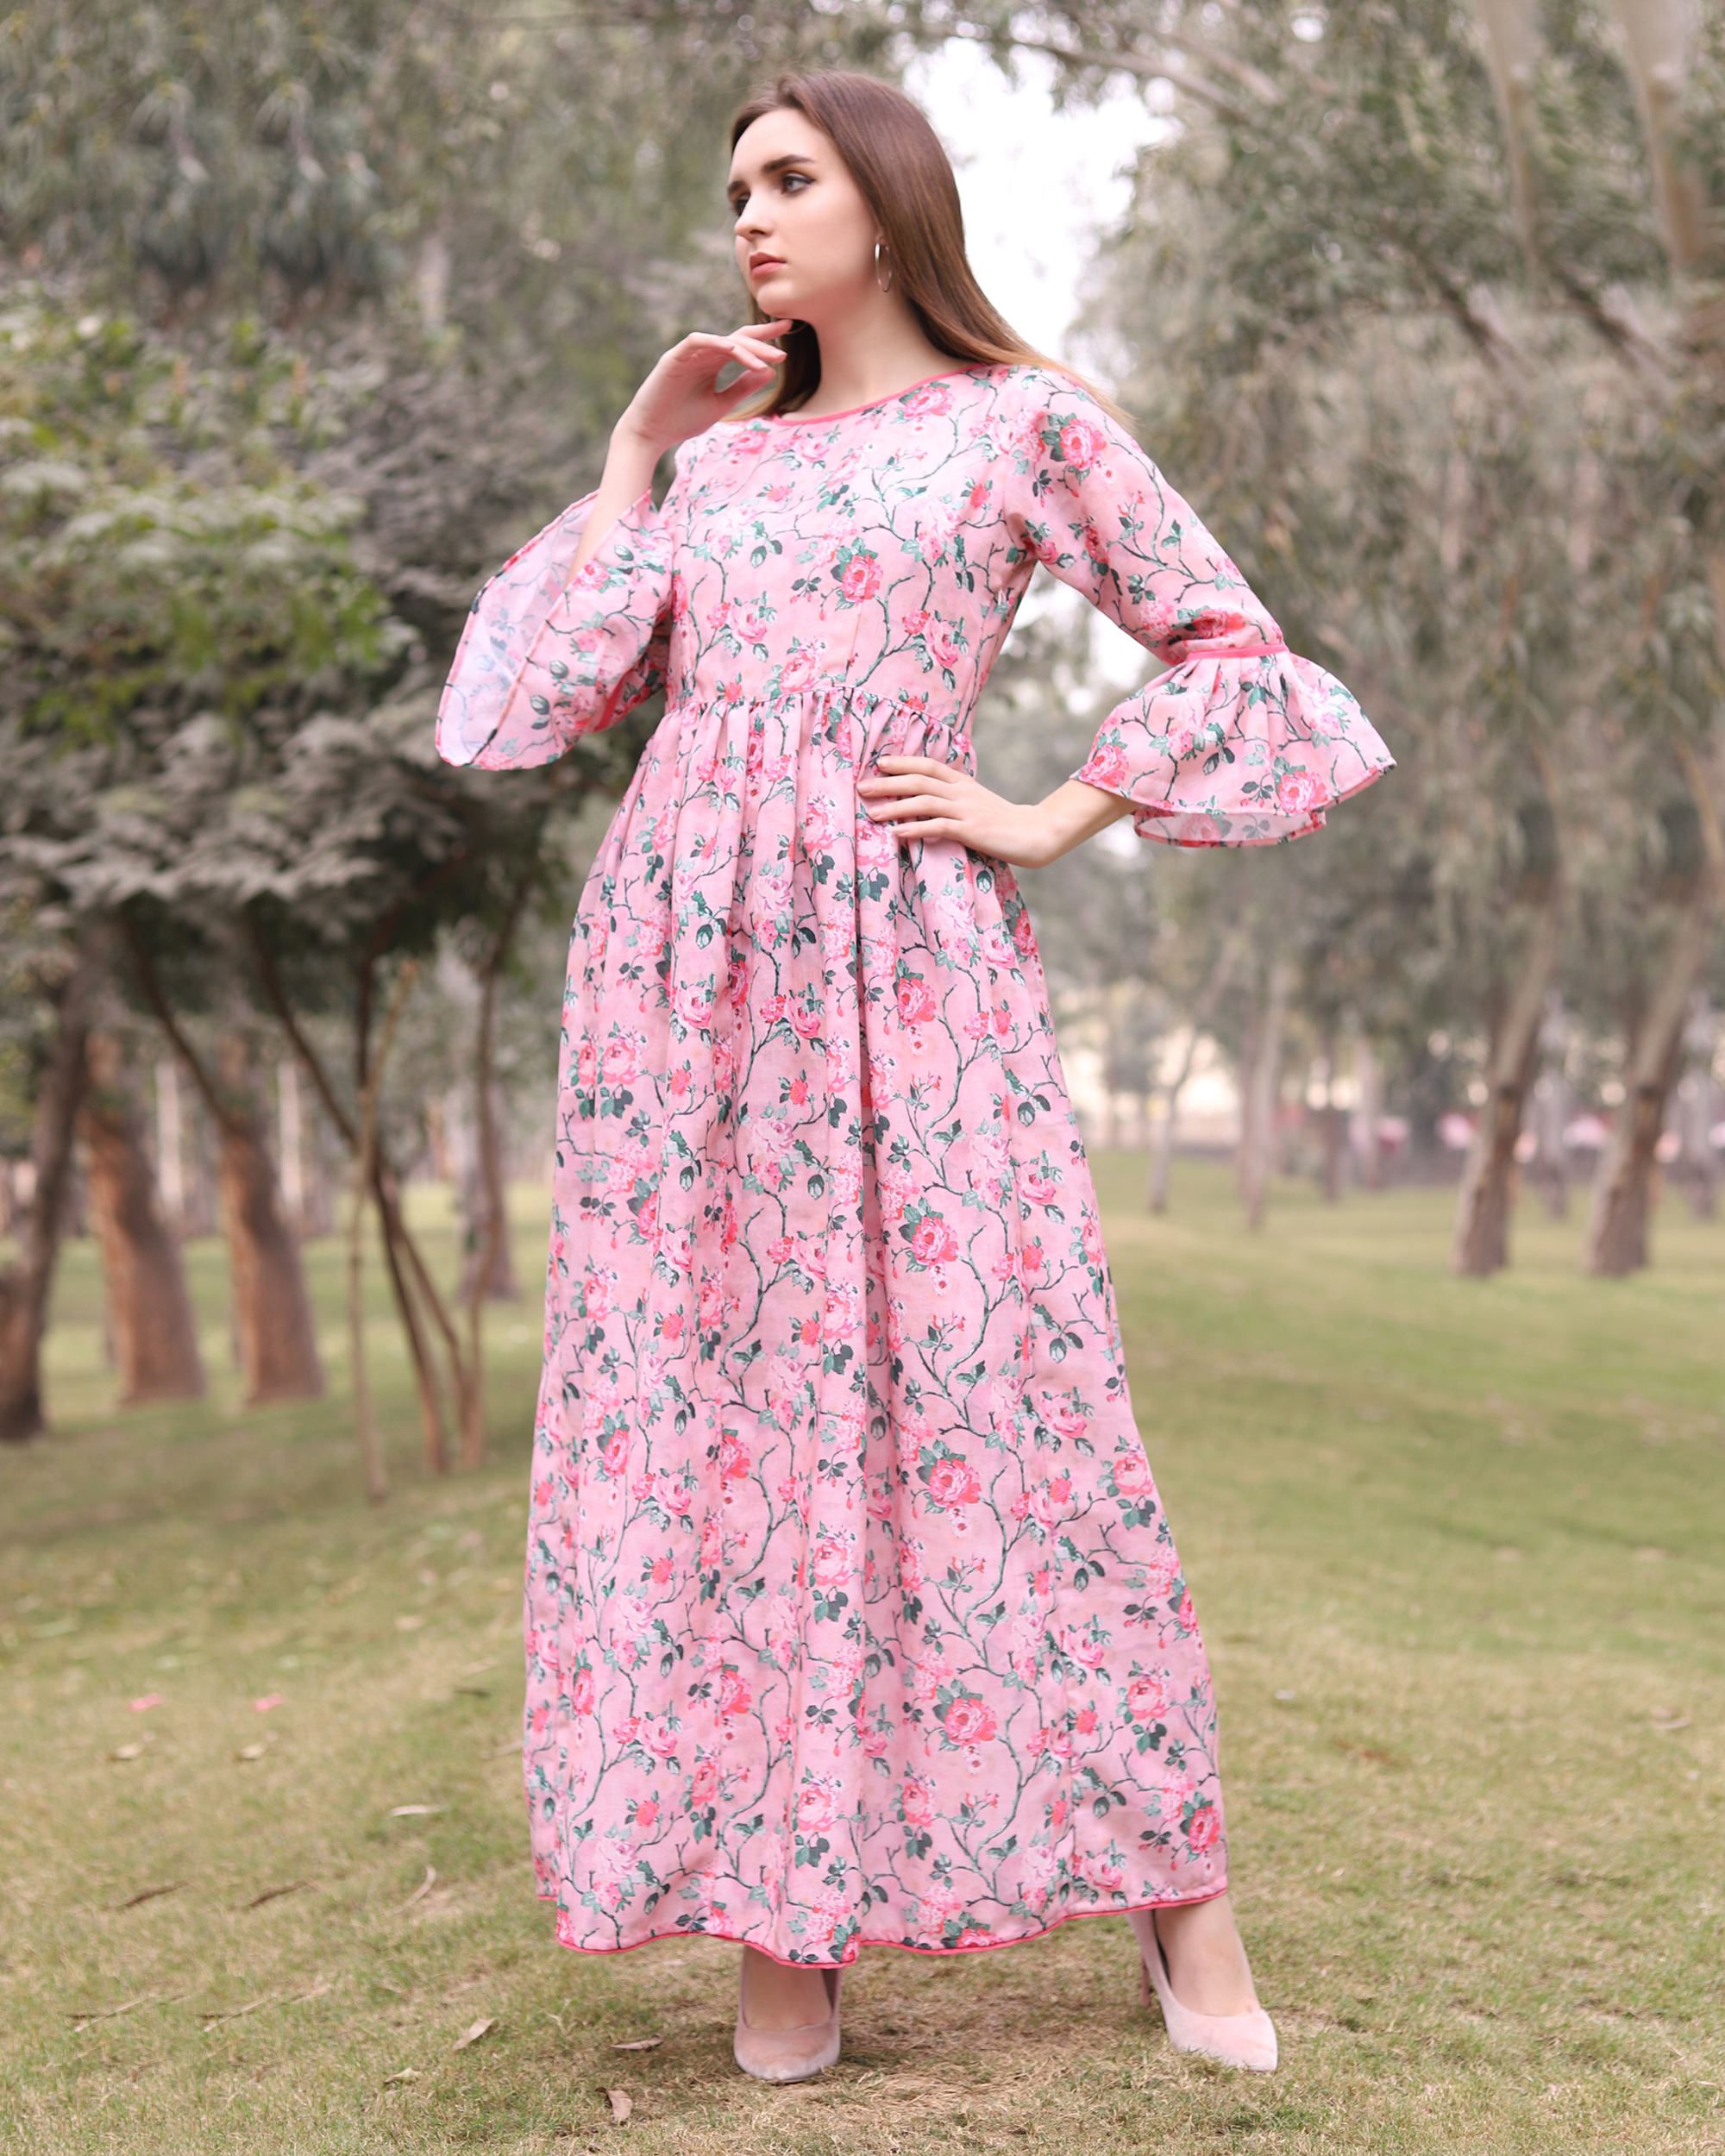 Floral pink gathered dress